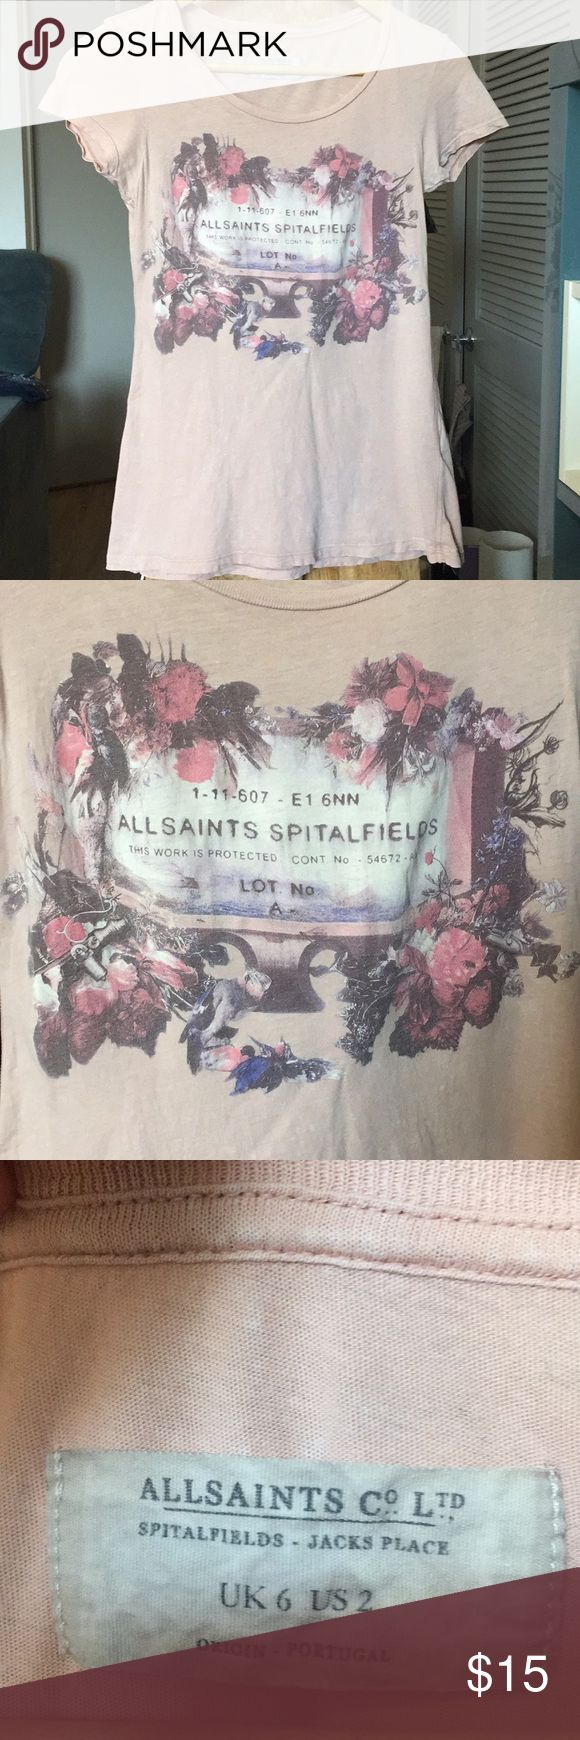 Allsaints pink distressed graphic T-shirt Size 2 Purchased at the Seattle branch on sale a few years ago. The design is meant to look distressed, there are faint white marks all over the shirt that's meant to be part of the design. Really awesome find from Allsaints older line! All Saints Tops Tees - Short Sleeve